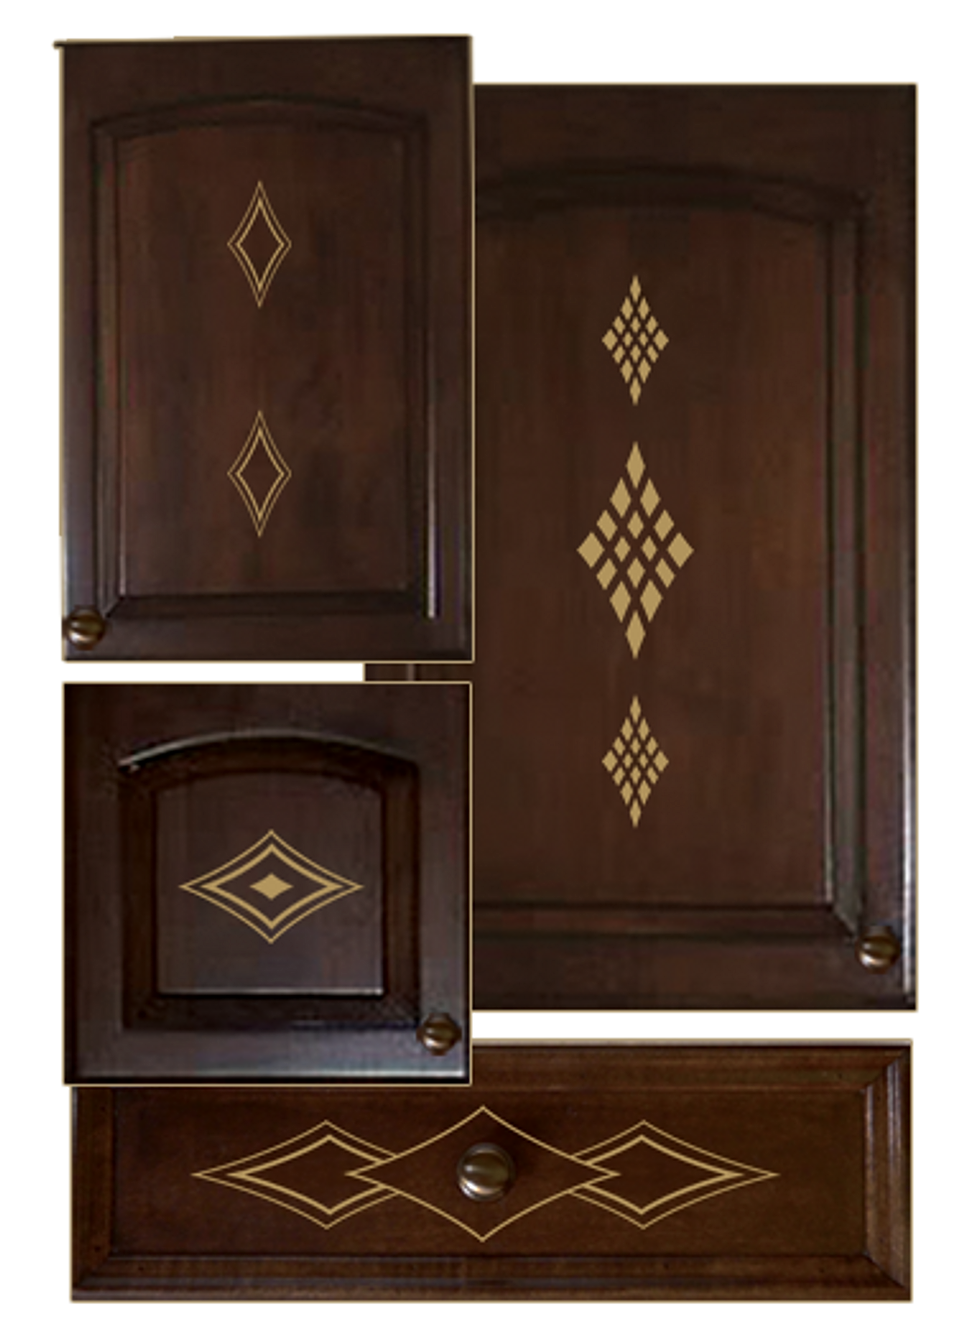 Kitchen cabinet decals decorative design kit - Decals for kitchen cabinets ...